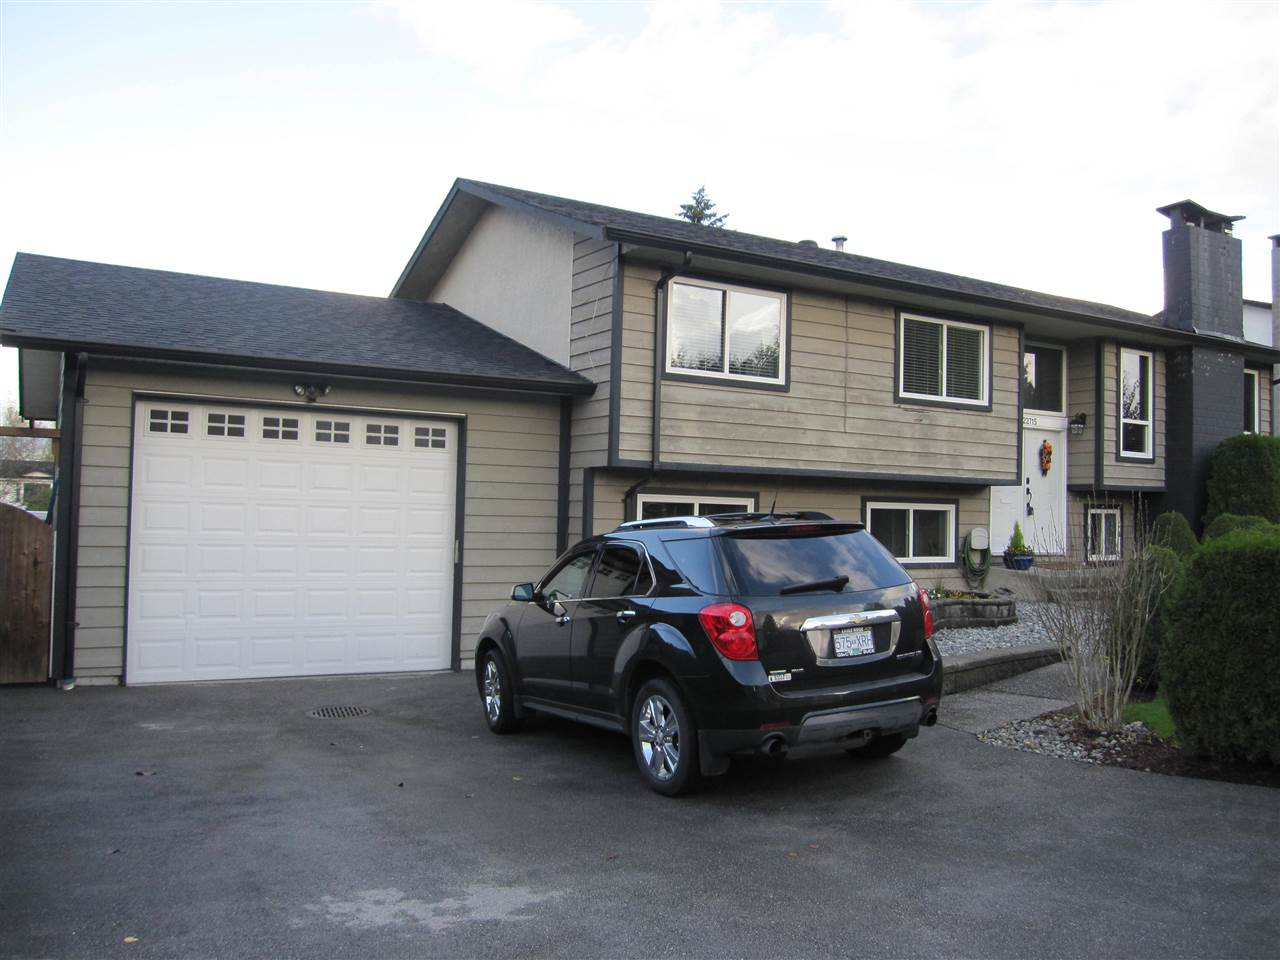 Main Photo: 22715 124 Avenue in Maple Ridge: East Central House for sale : MLS® # R2123558